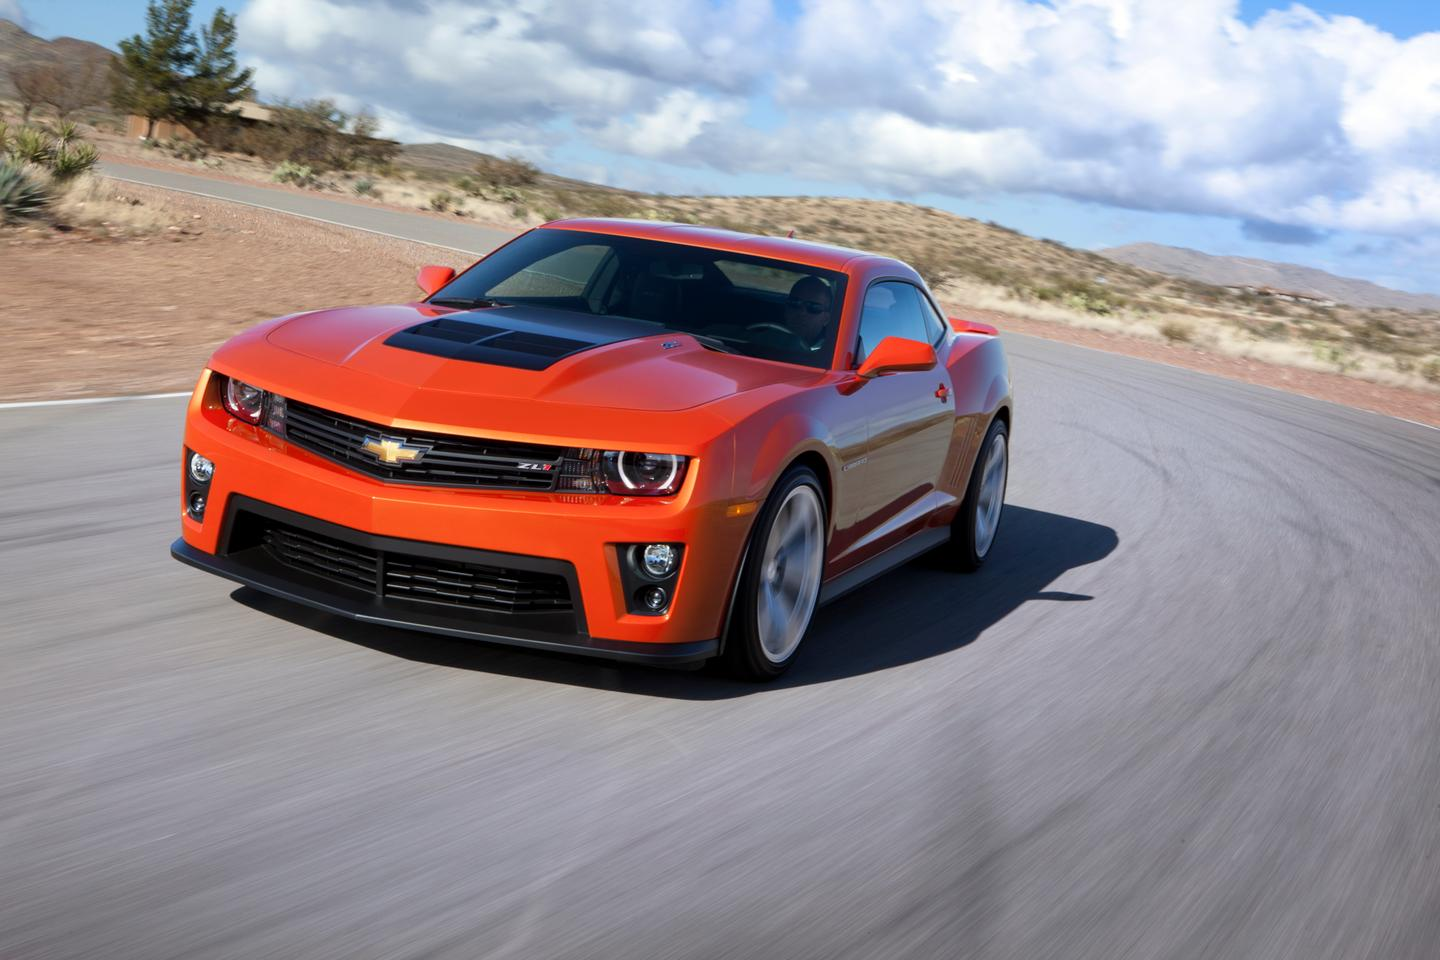 The Camaro ZL1 is the most powerful production Camaro ever